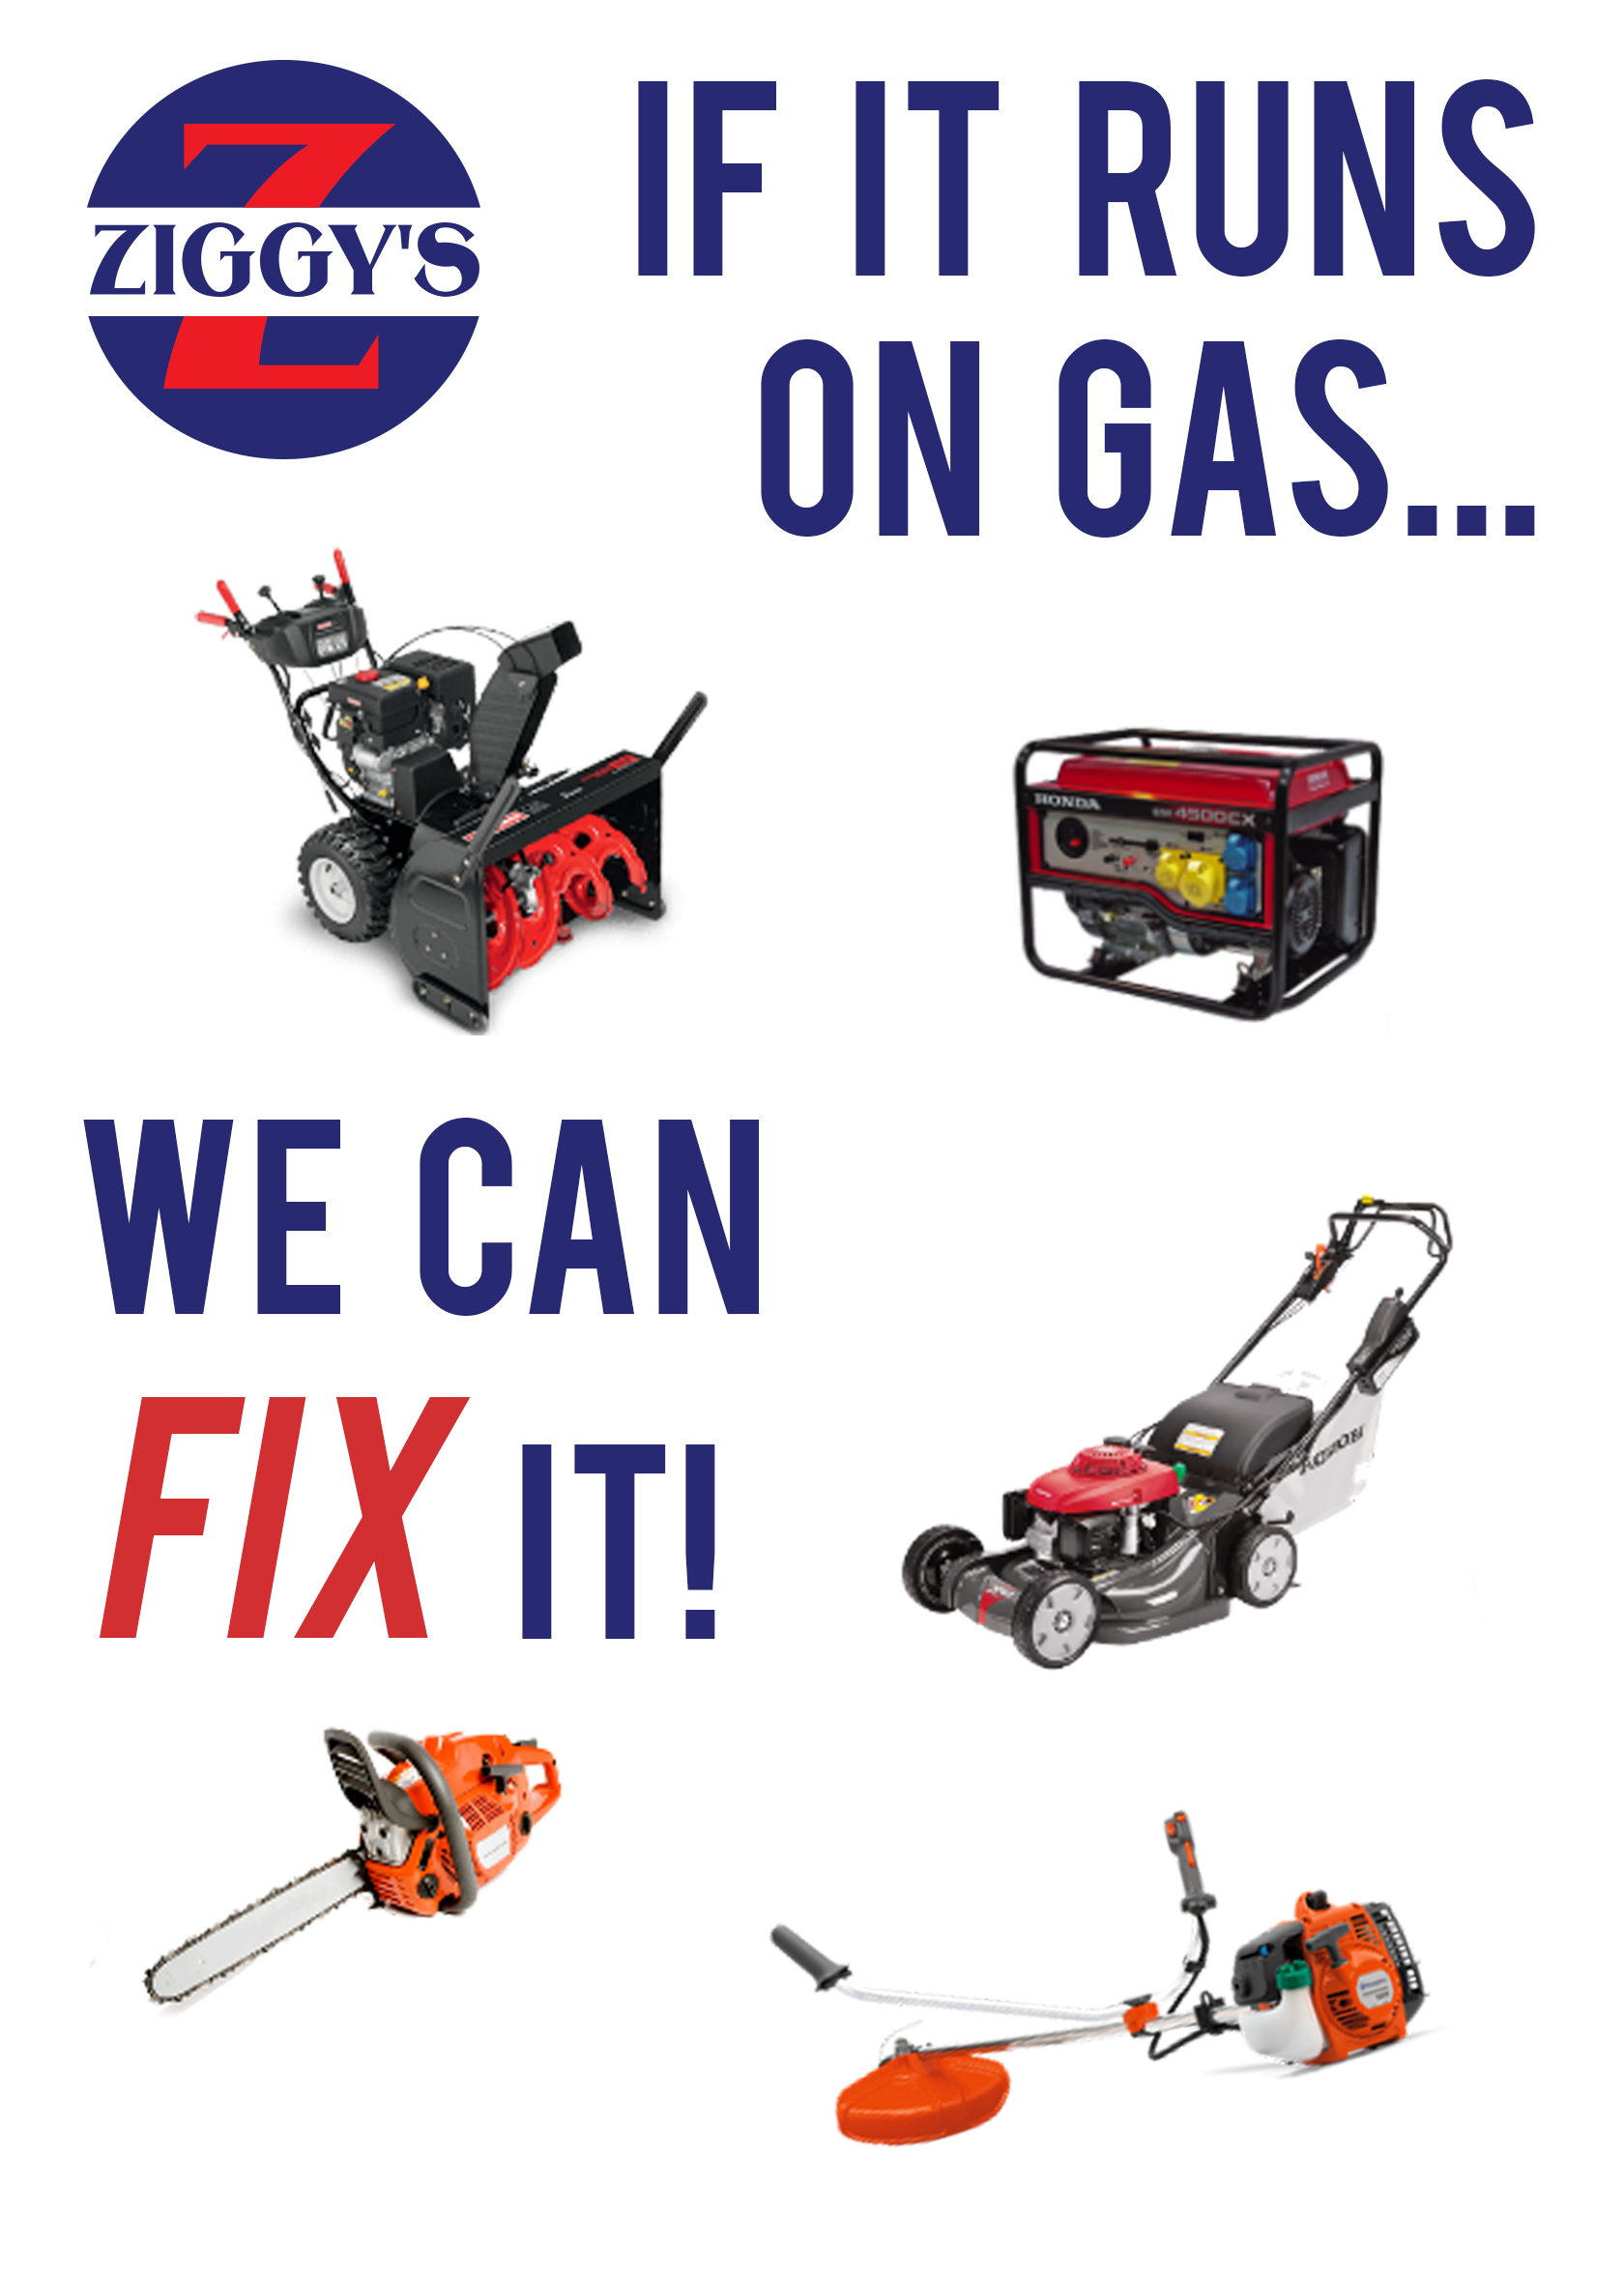 Repair Shop - If it runs on gas, we can fix it!